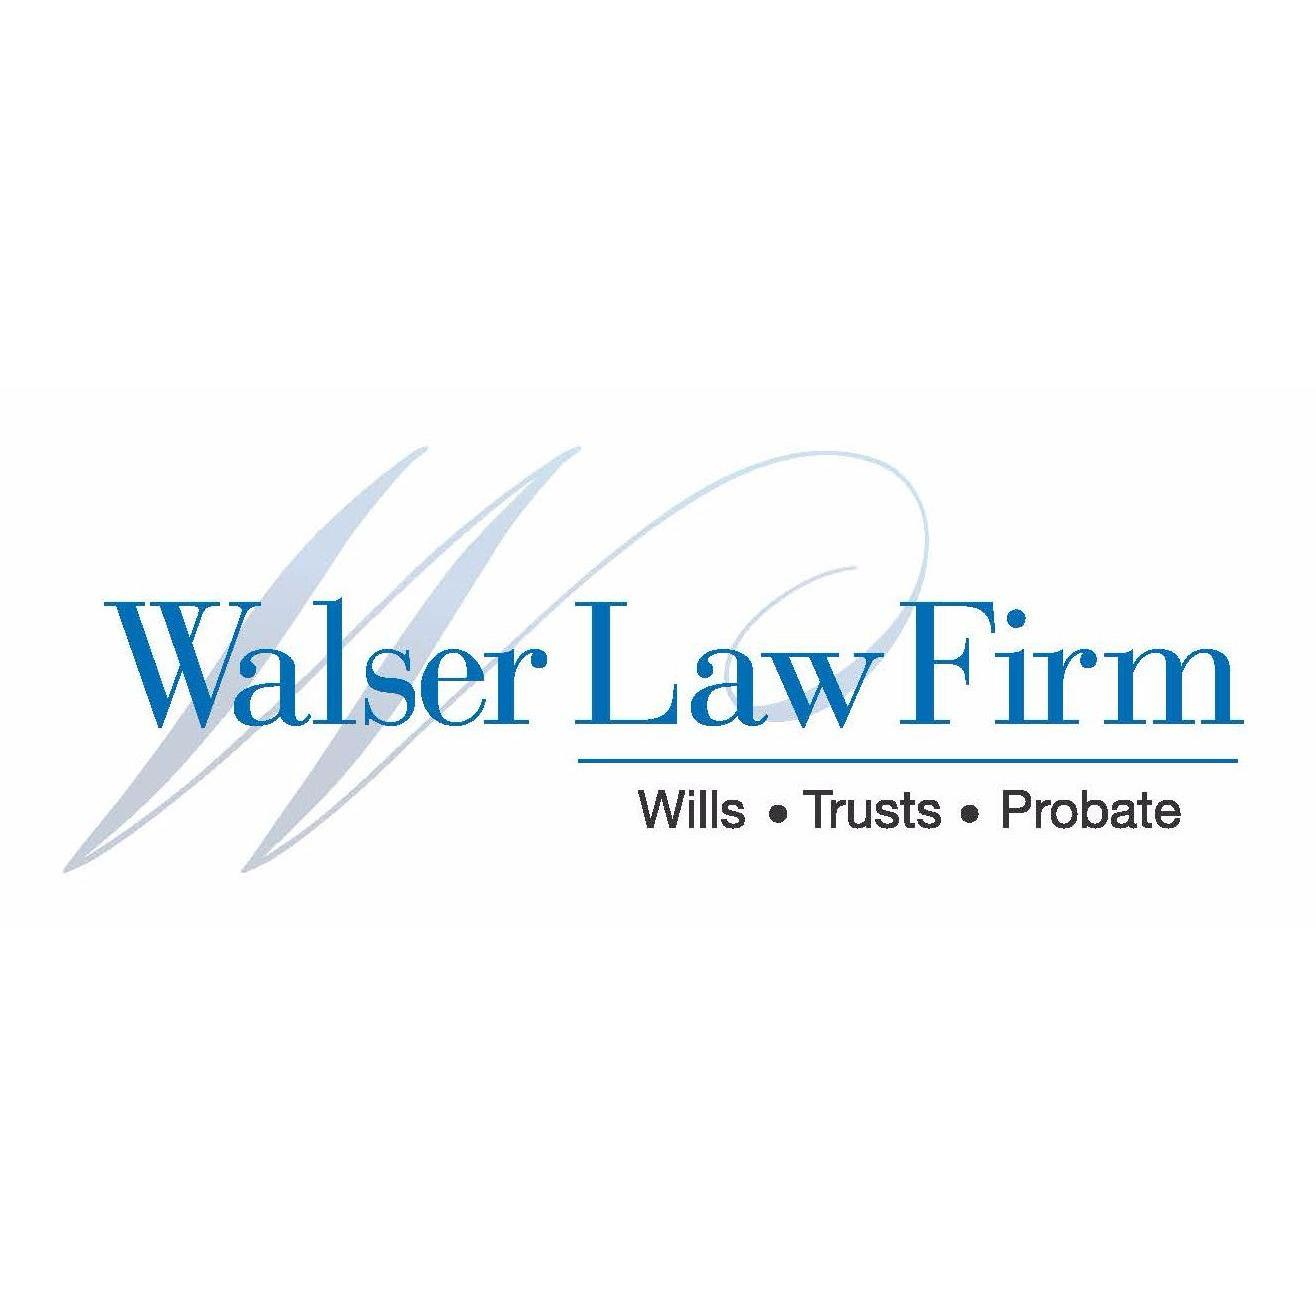 Walser Law Firm